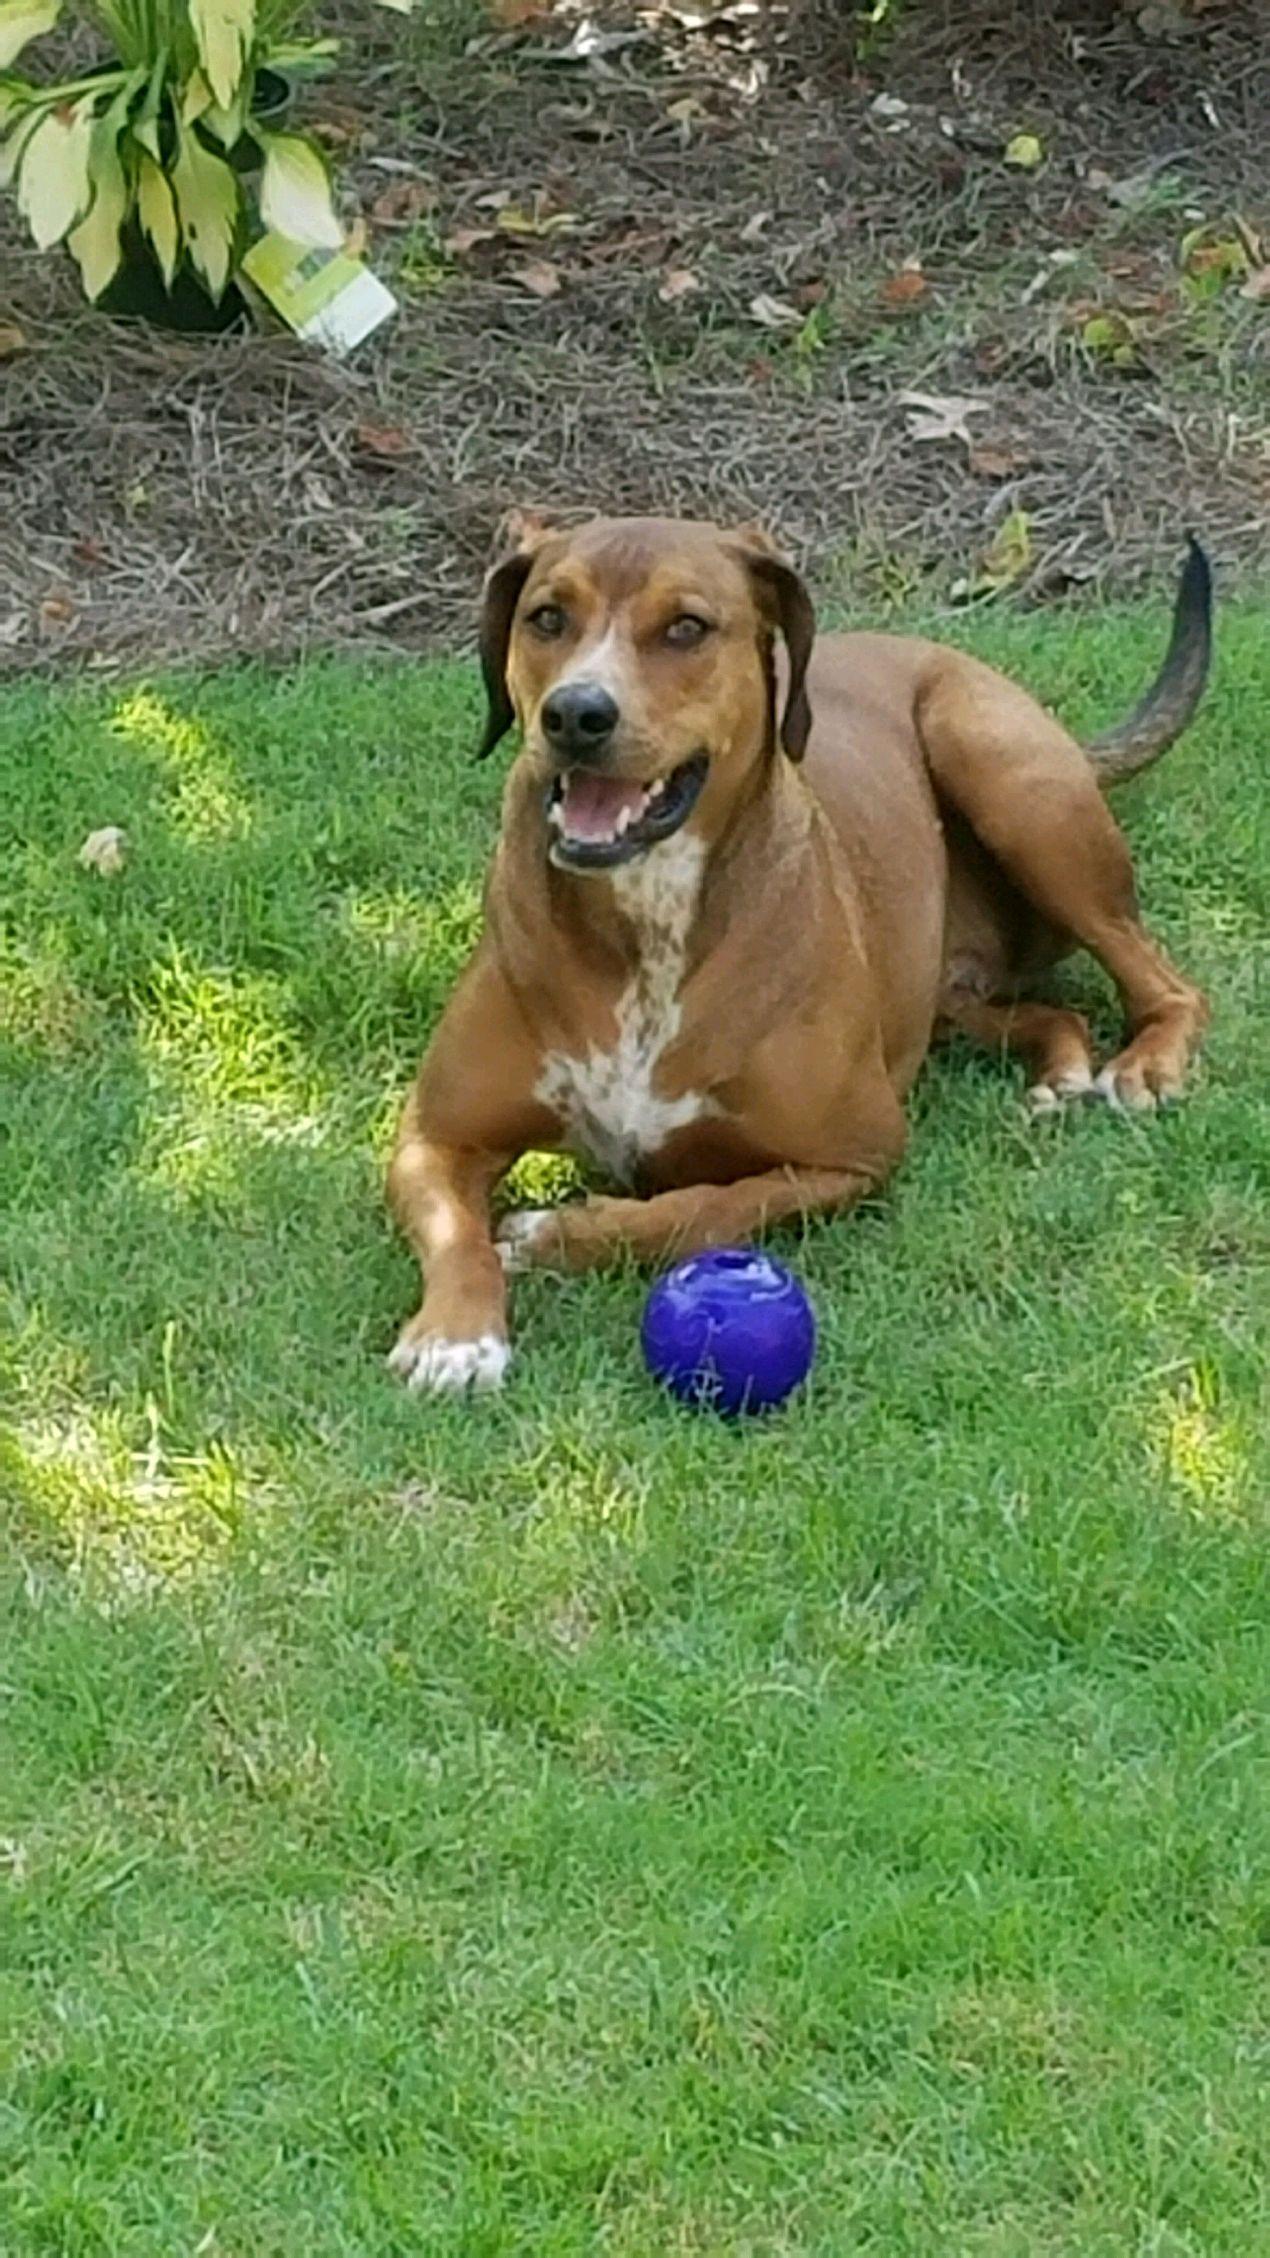 Brown and white dog laying in green grass next to a blue ball